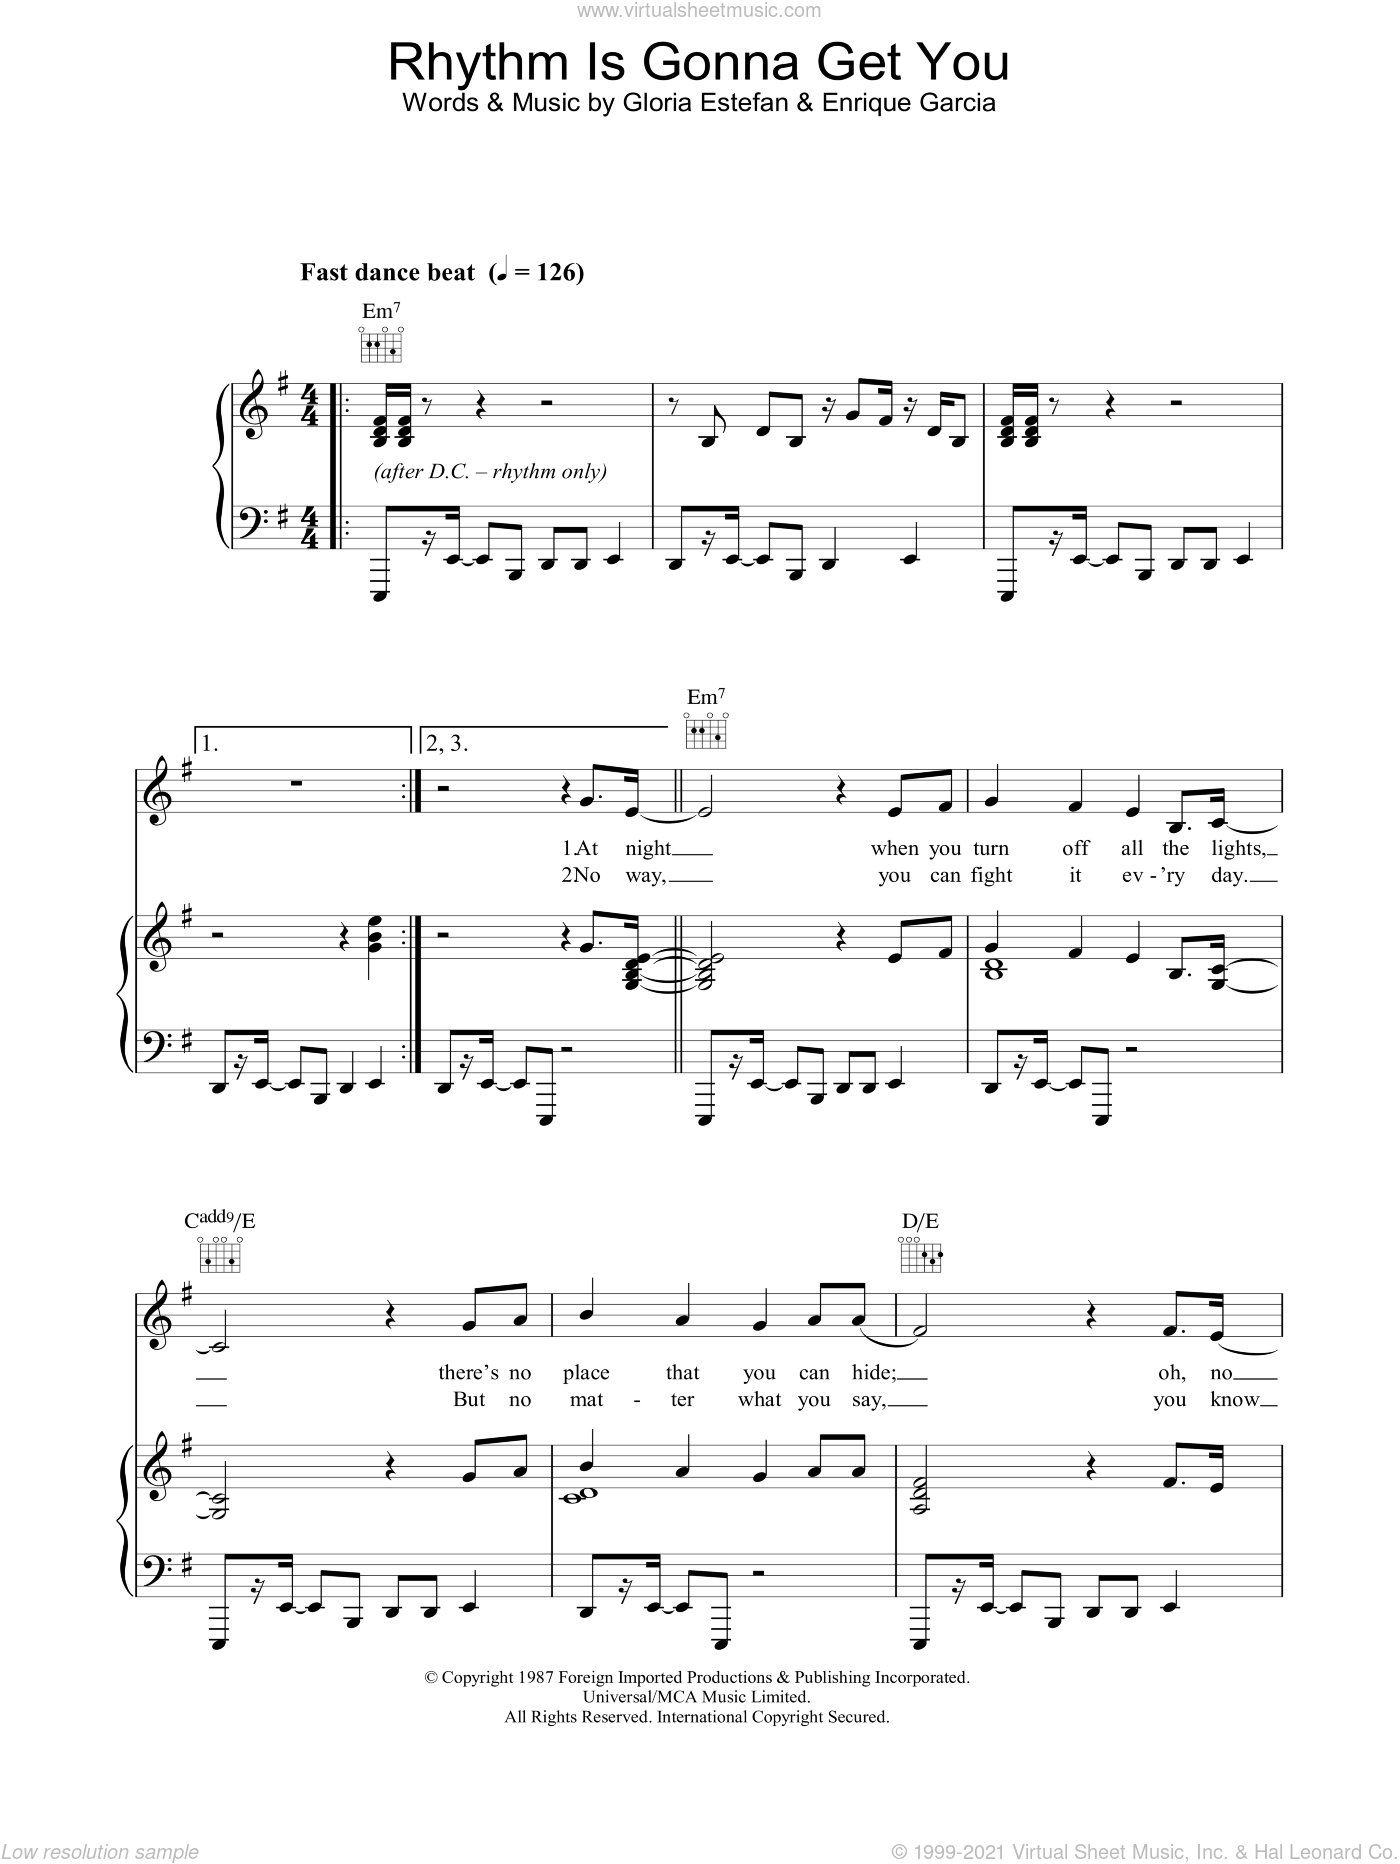 Rhythm Is Gonna Get You sheet music for voice, piano or guitar by Enrique Garcia and Gloria Estefan. Score Image Preview.